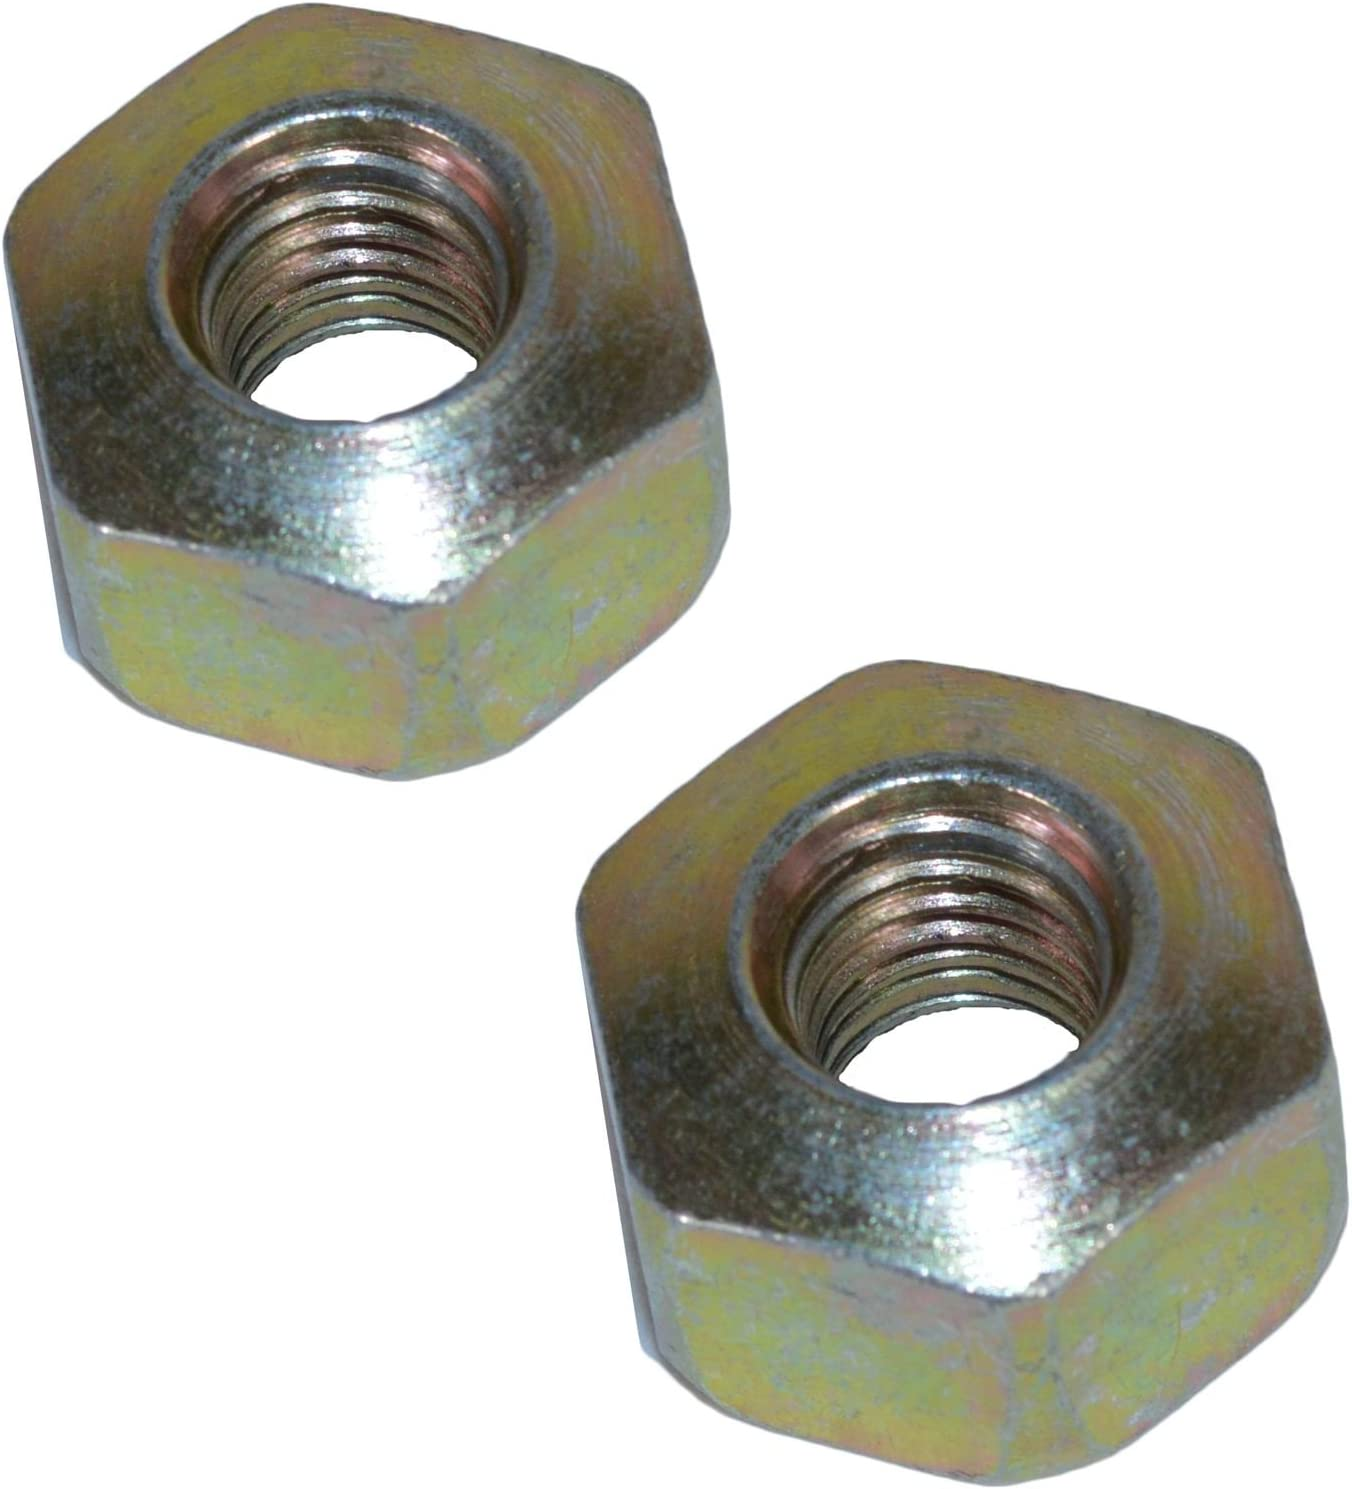 Trailer Domed Brake Cable Nut Fastener For Alko Knott Braked Cables Pack Of 2